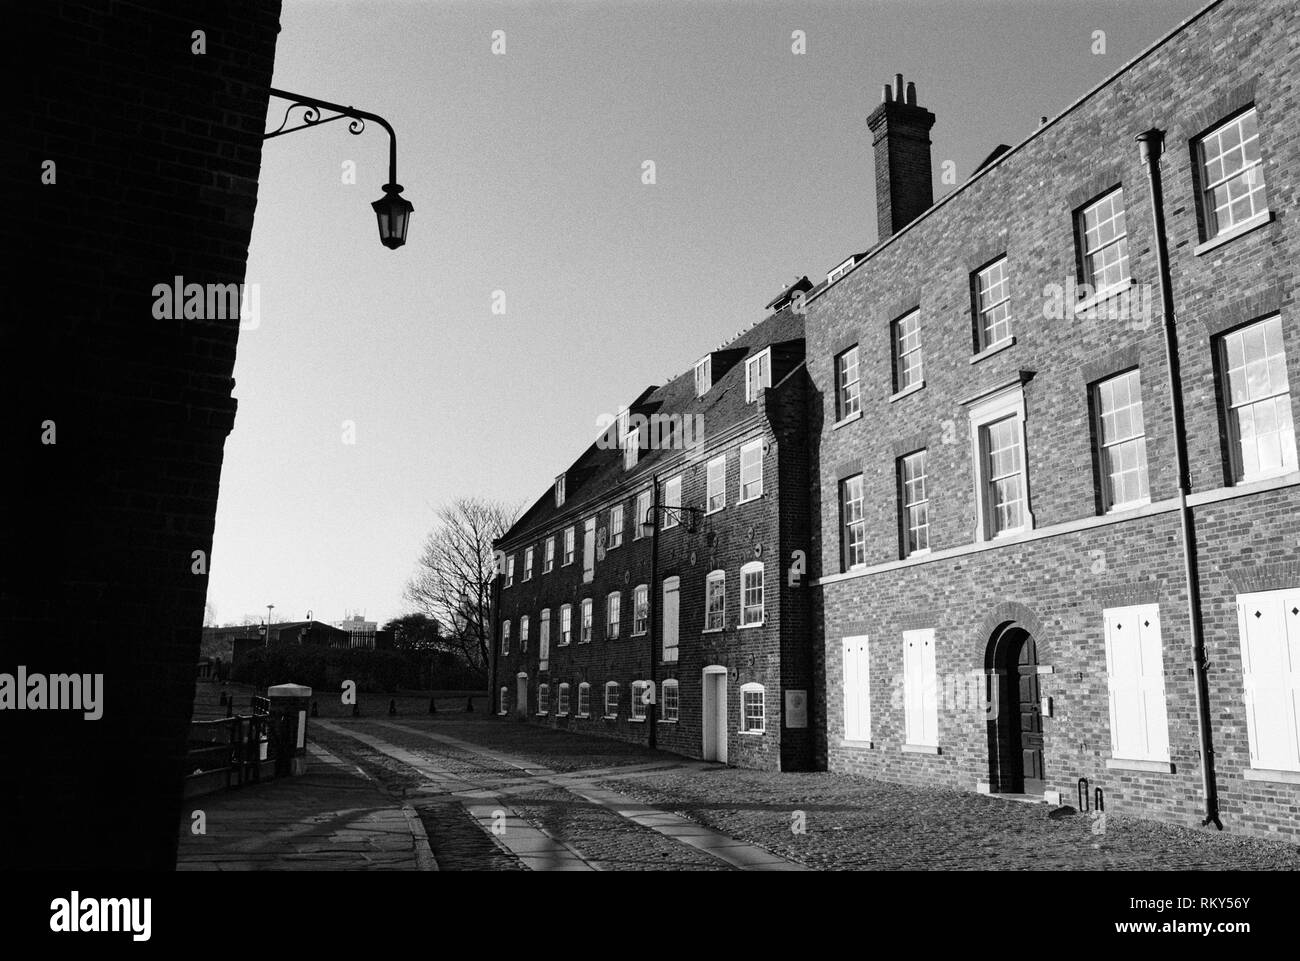 The 18th century House Mill building on Three Mills Island, Bromley-By-Bow, East London UK - Stock Image